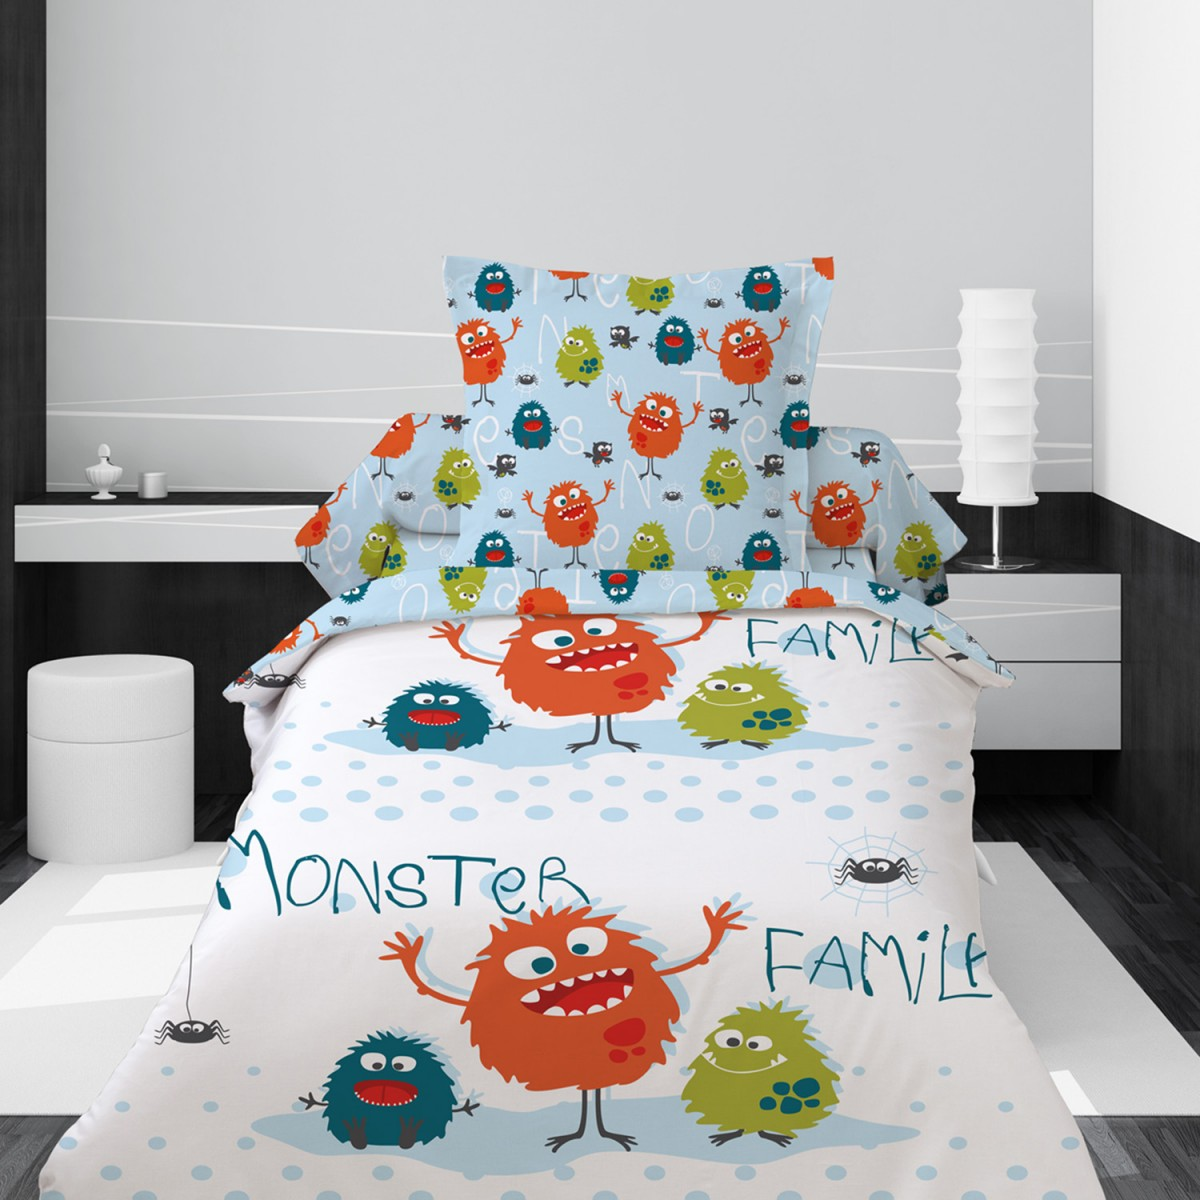 housse de couette 1 personne monster family les douces nuits de ma linge de maison. Black Bedroom Furniture Sets. Home Design Ideas